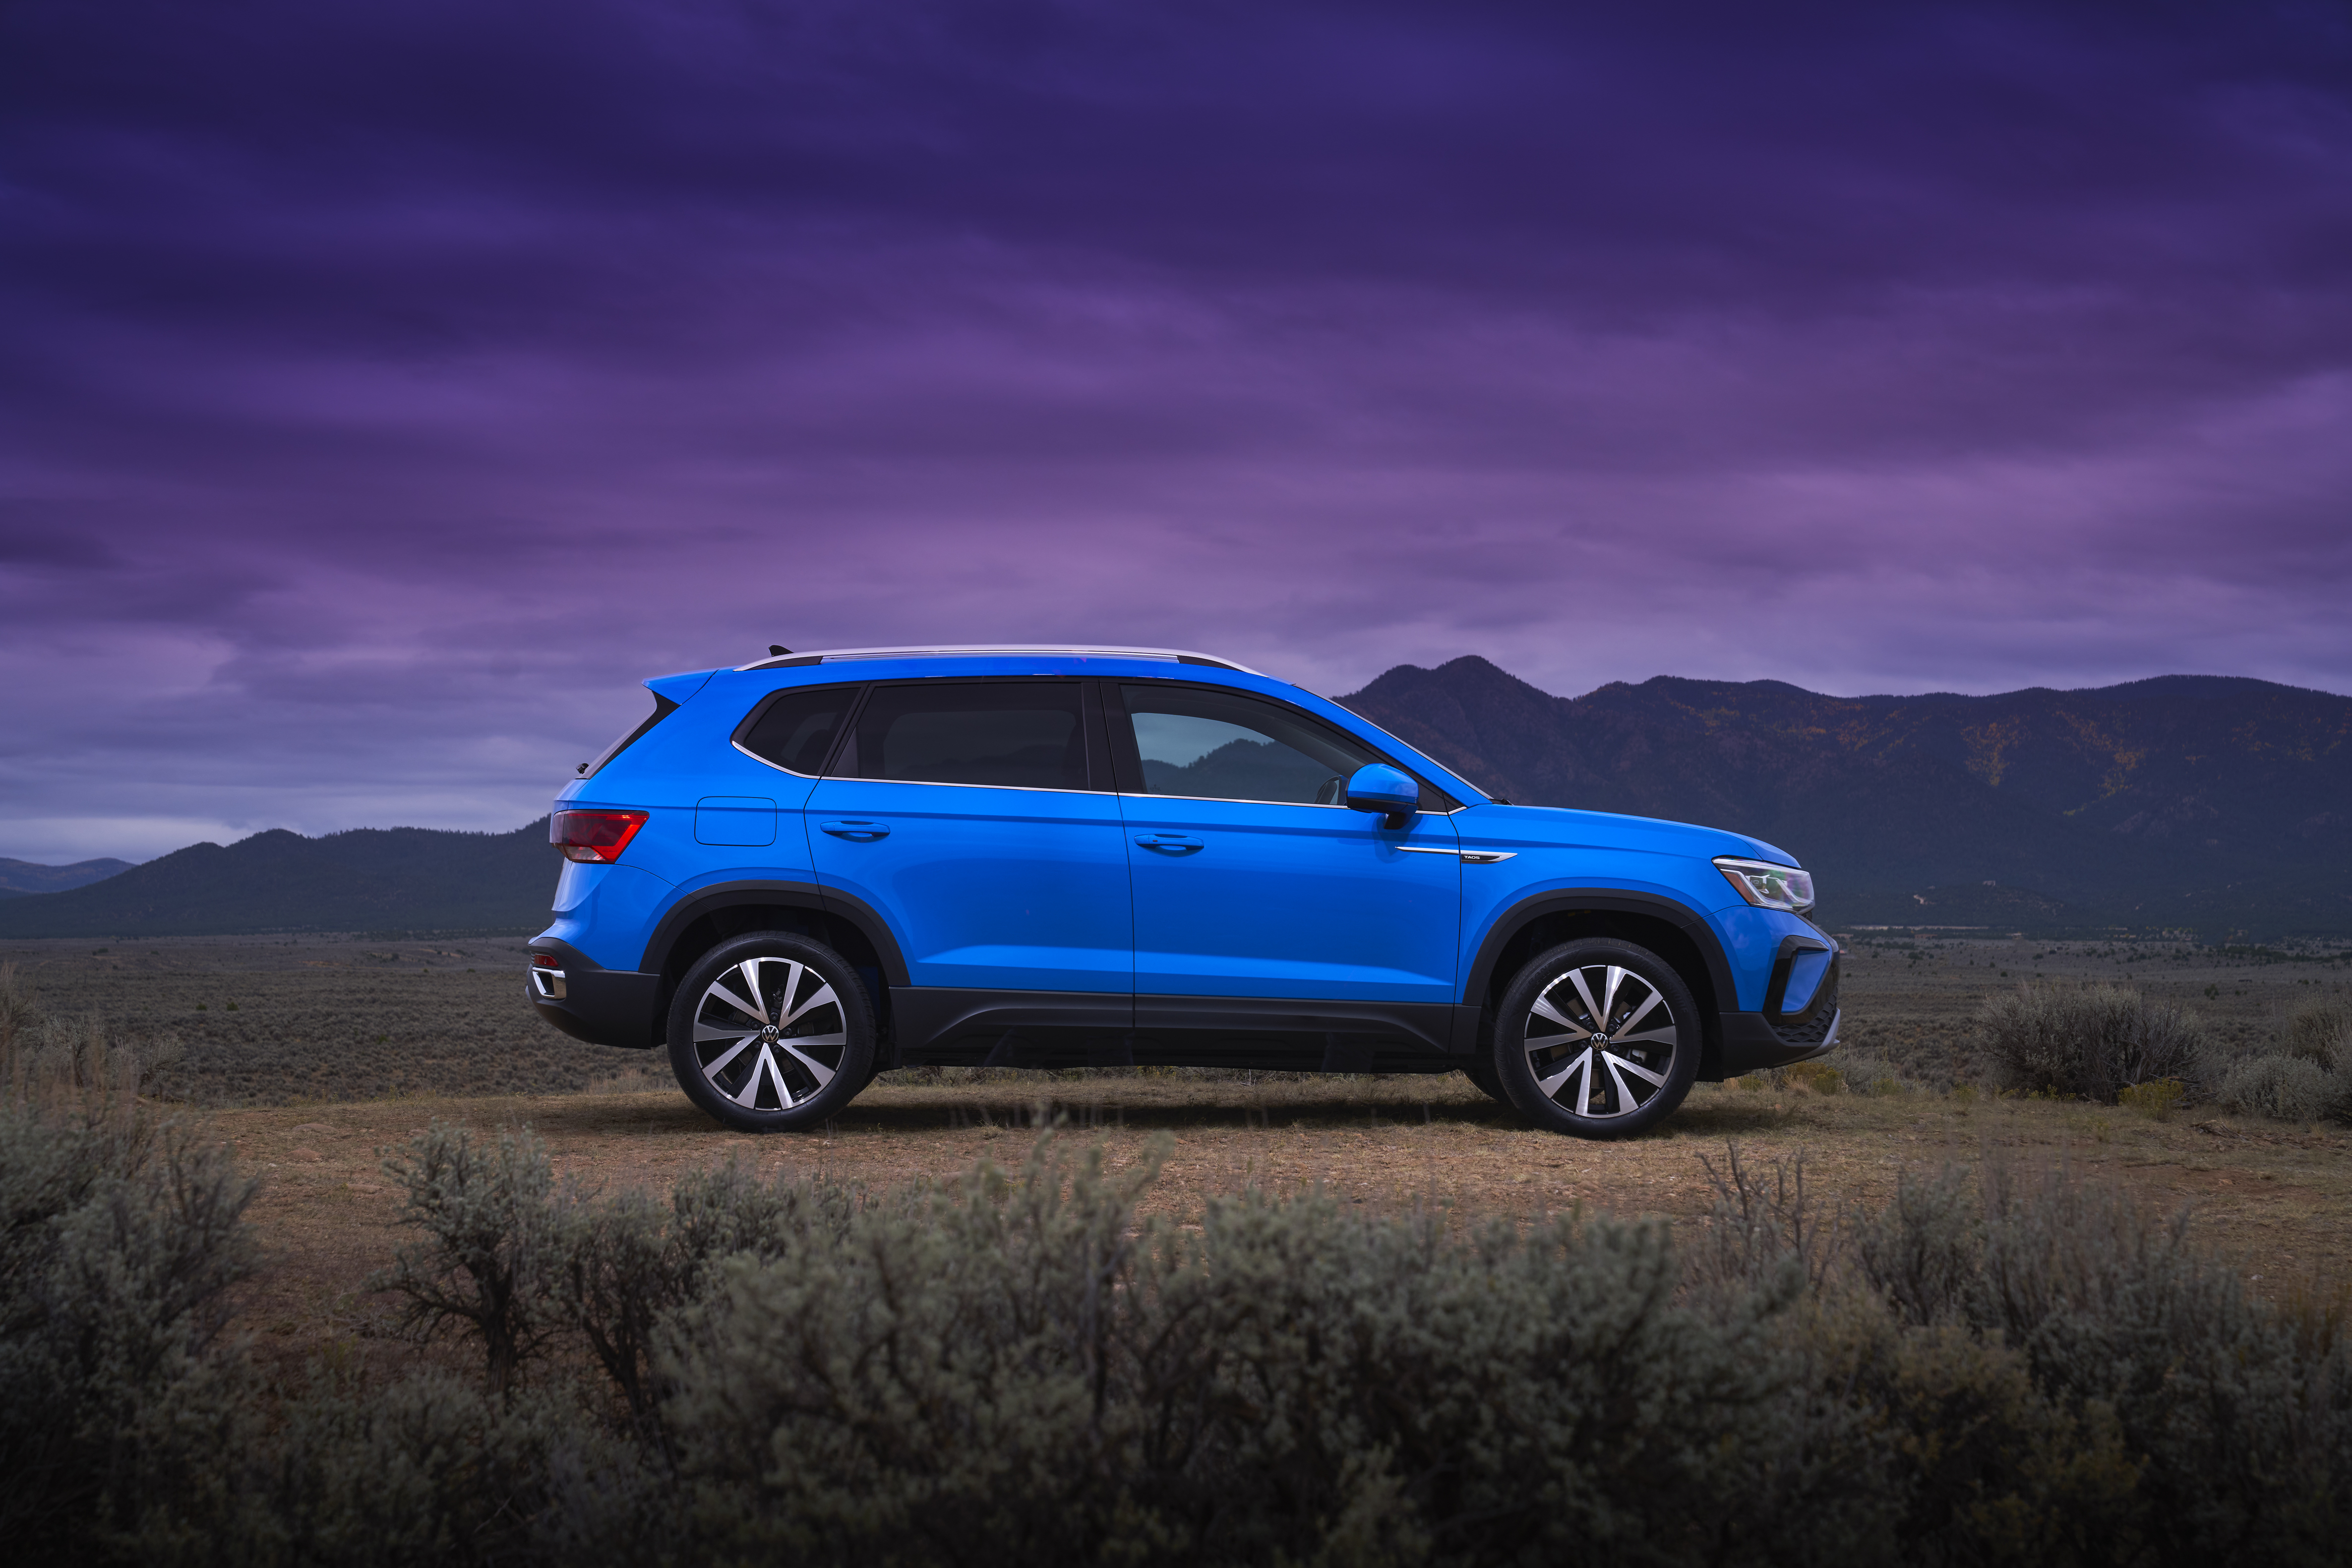 Side View of Blue 2022 Volkswagen Taos SUV with mountain and purple sky in background